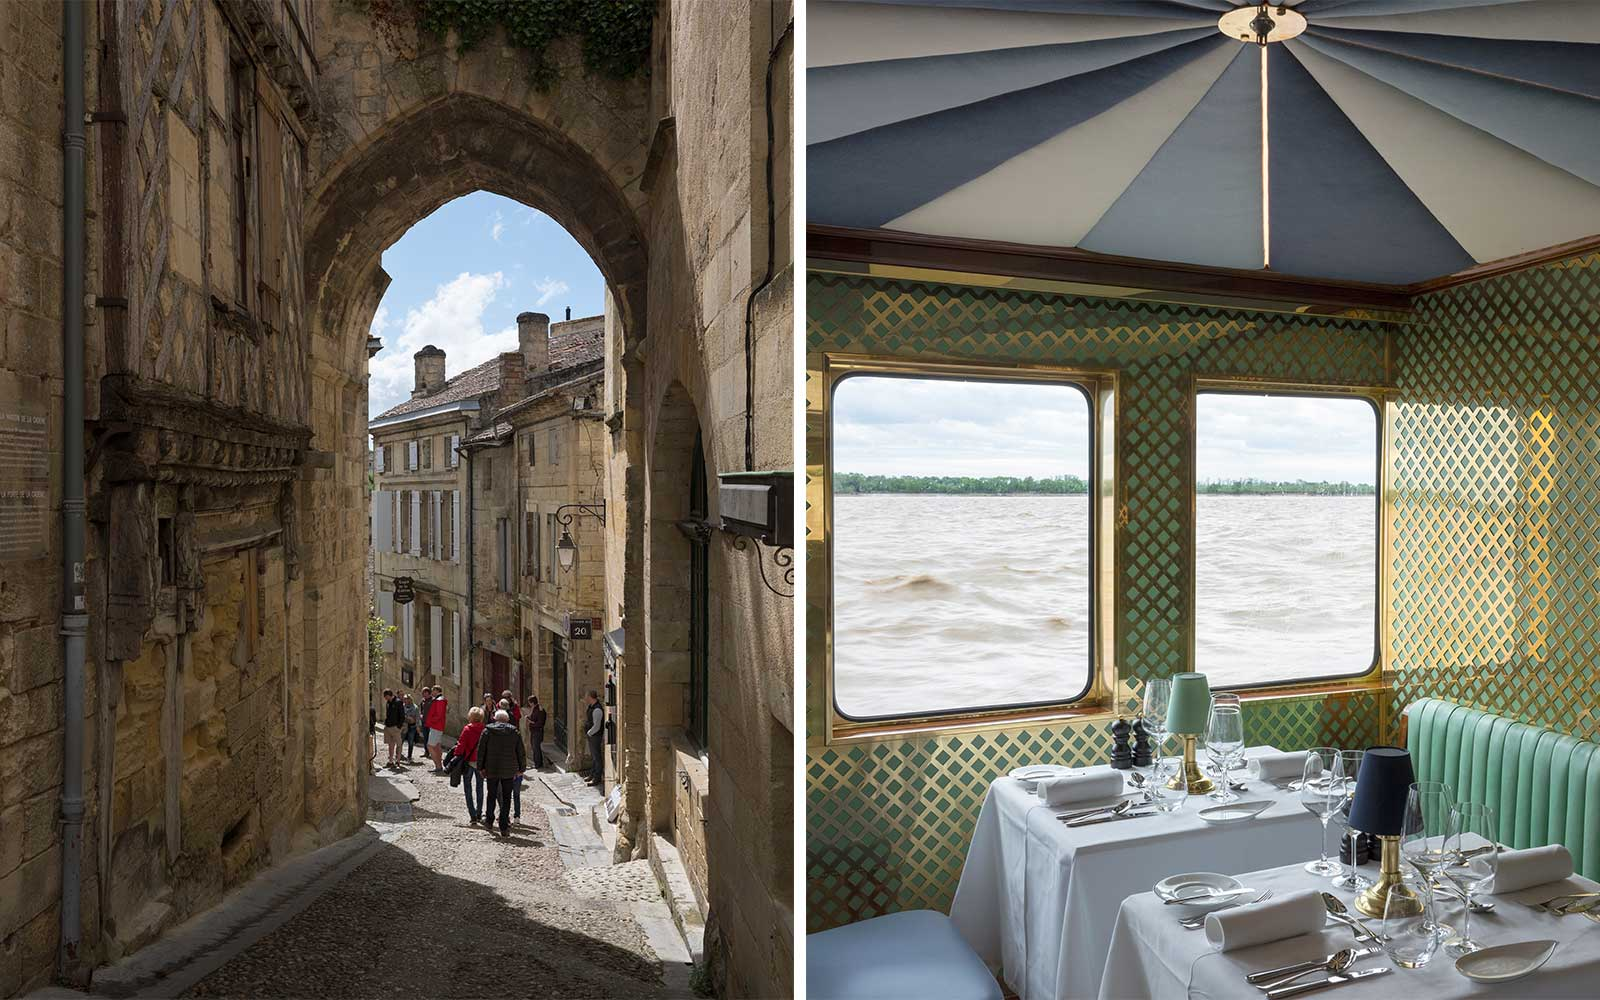 Scenes from the Bordeaux region of France